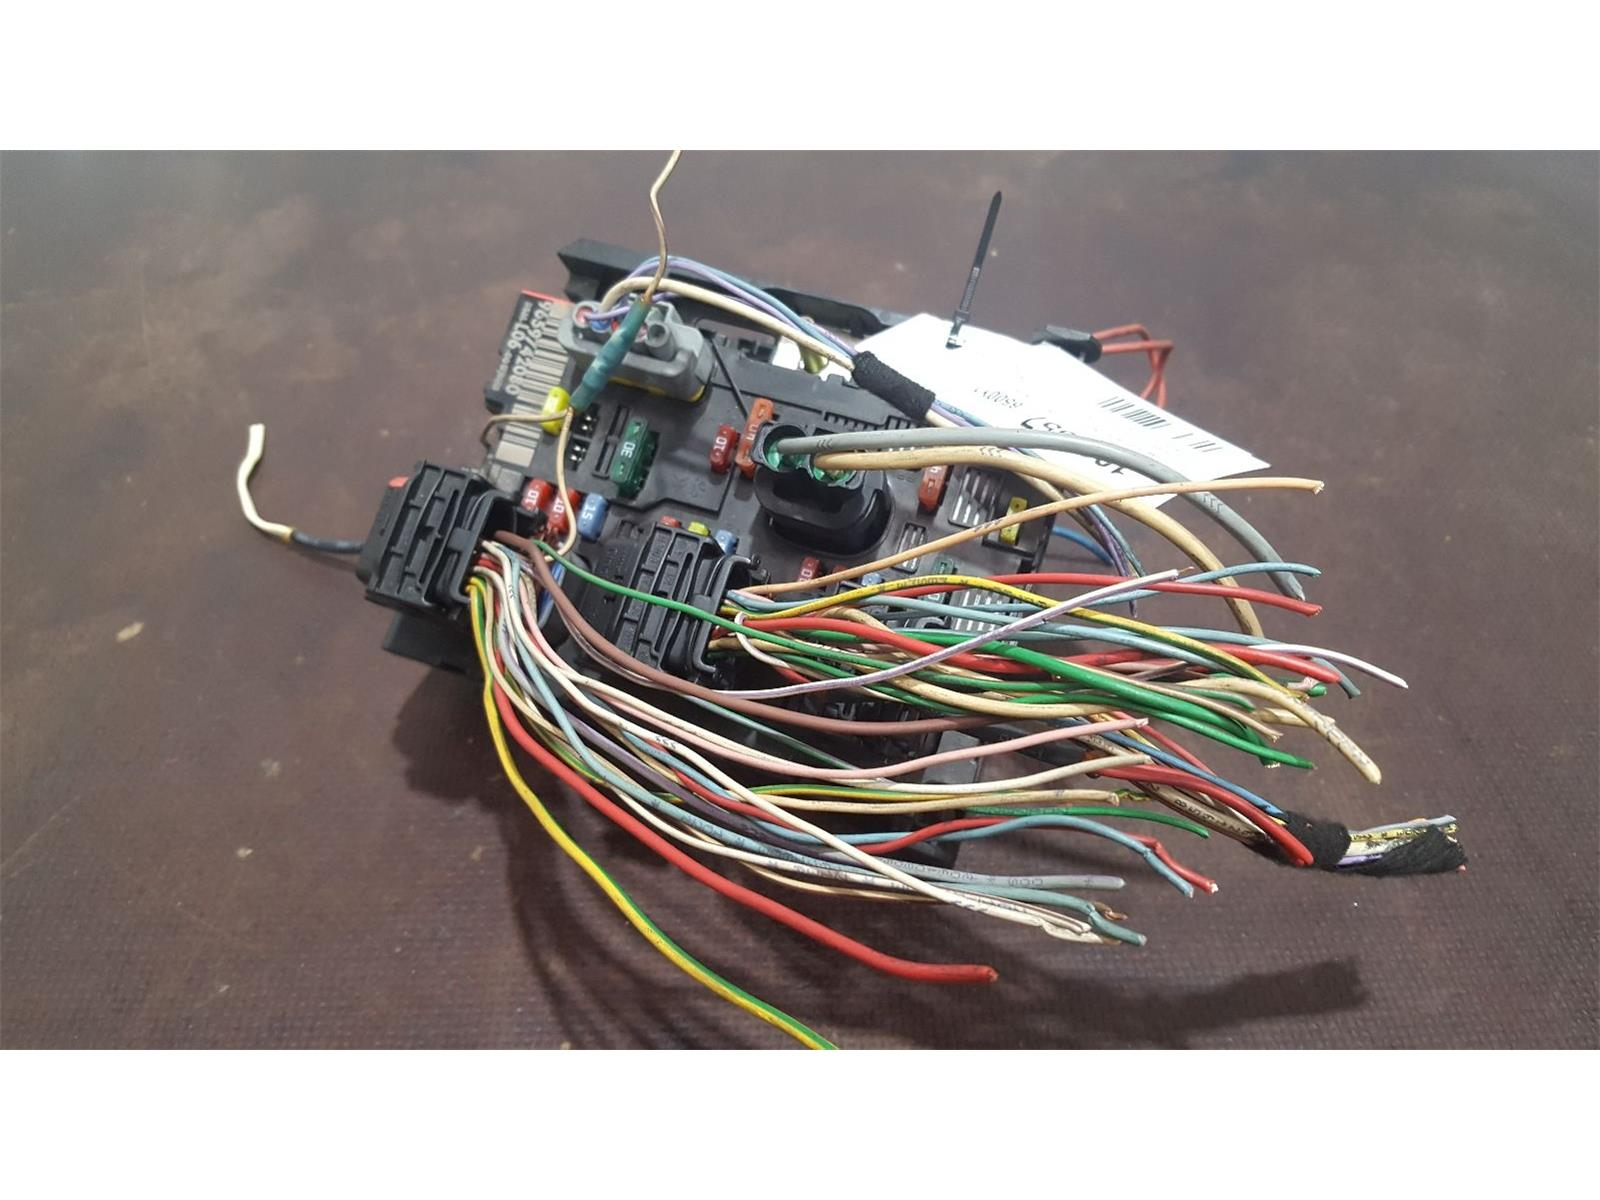 Peugeot 307 Fuse Box For Sale : Peugeot fuse box removal wiring library